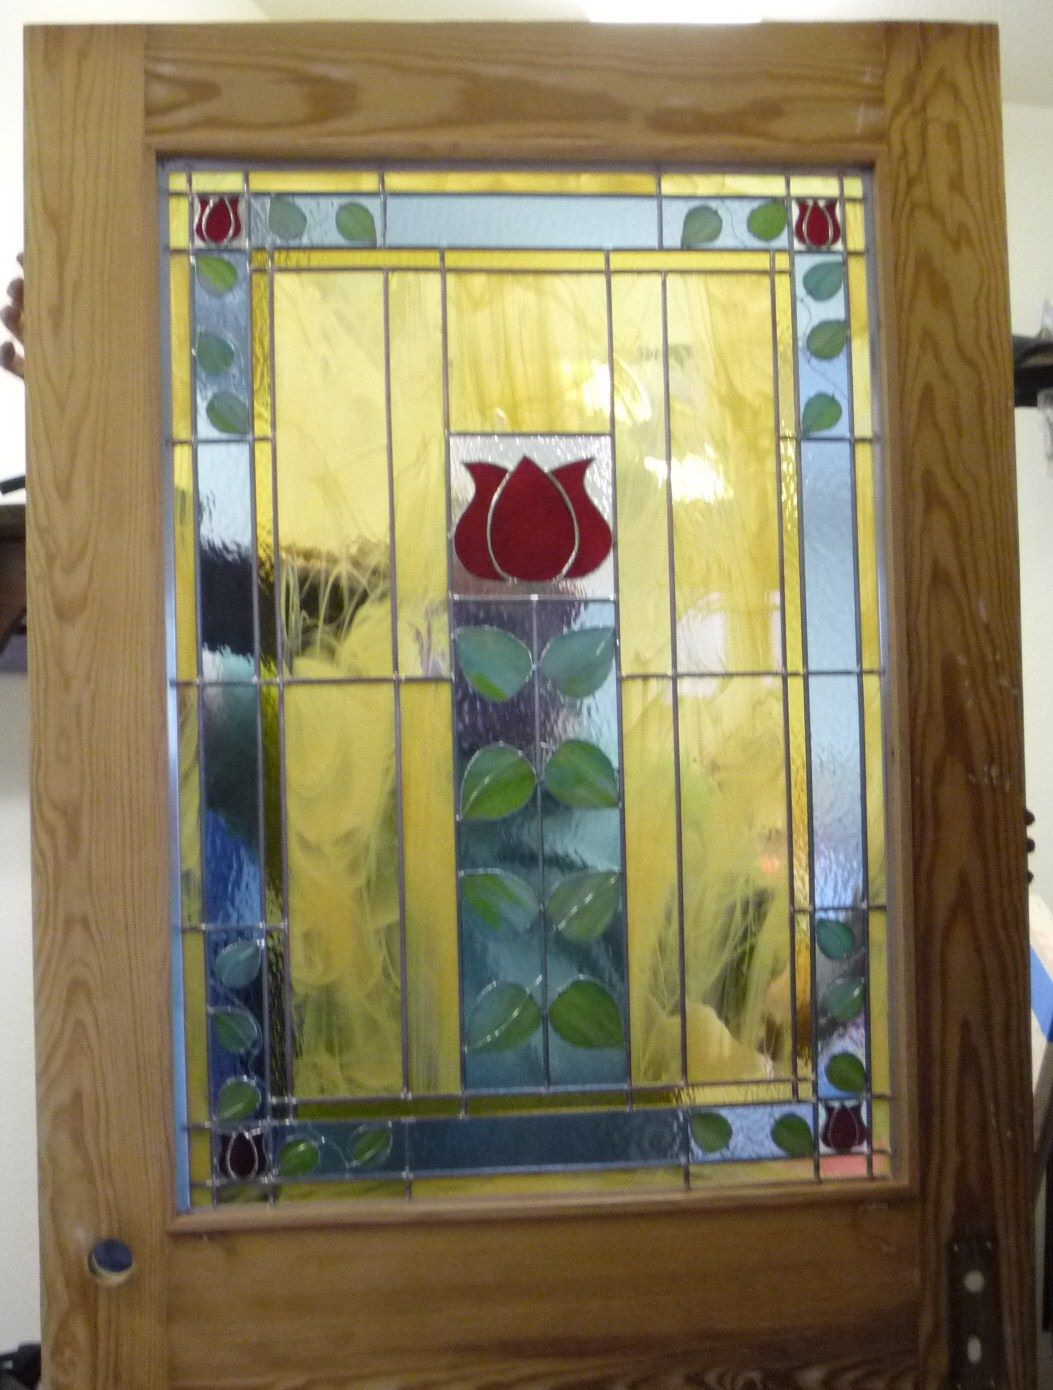 Stained Glass Art And Craft Design Kitchen Door For Carolina Bed And Breakfast In Asheville Nc